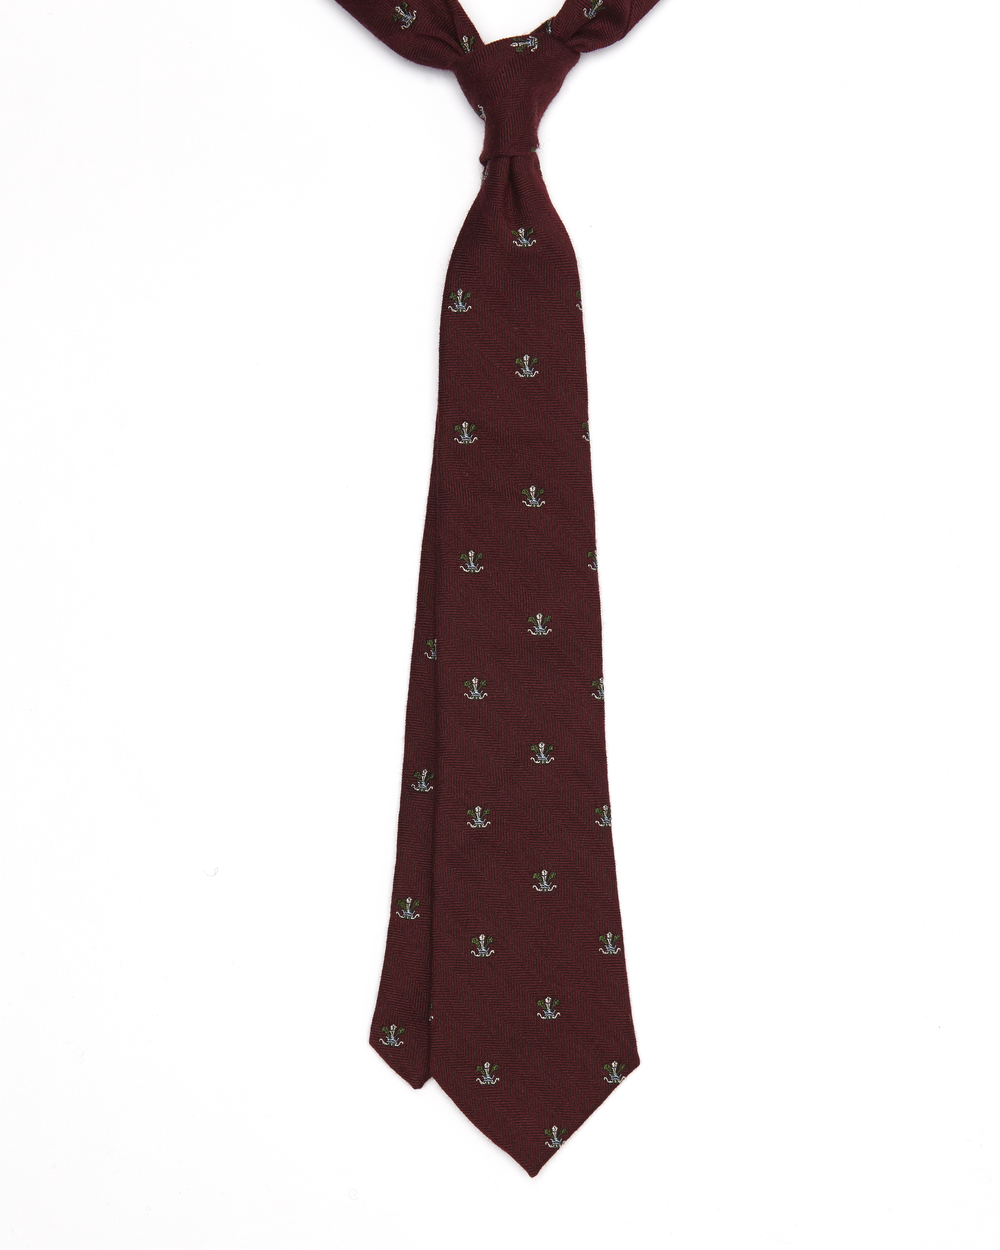 The Harold Tie | Silk & Wool Mix Herringbone Jacquard Crest Pattern | Colour: Burgundy, White, Blue, Green & Sky Blue